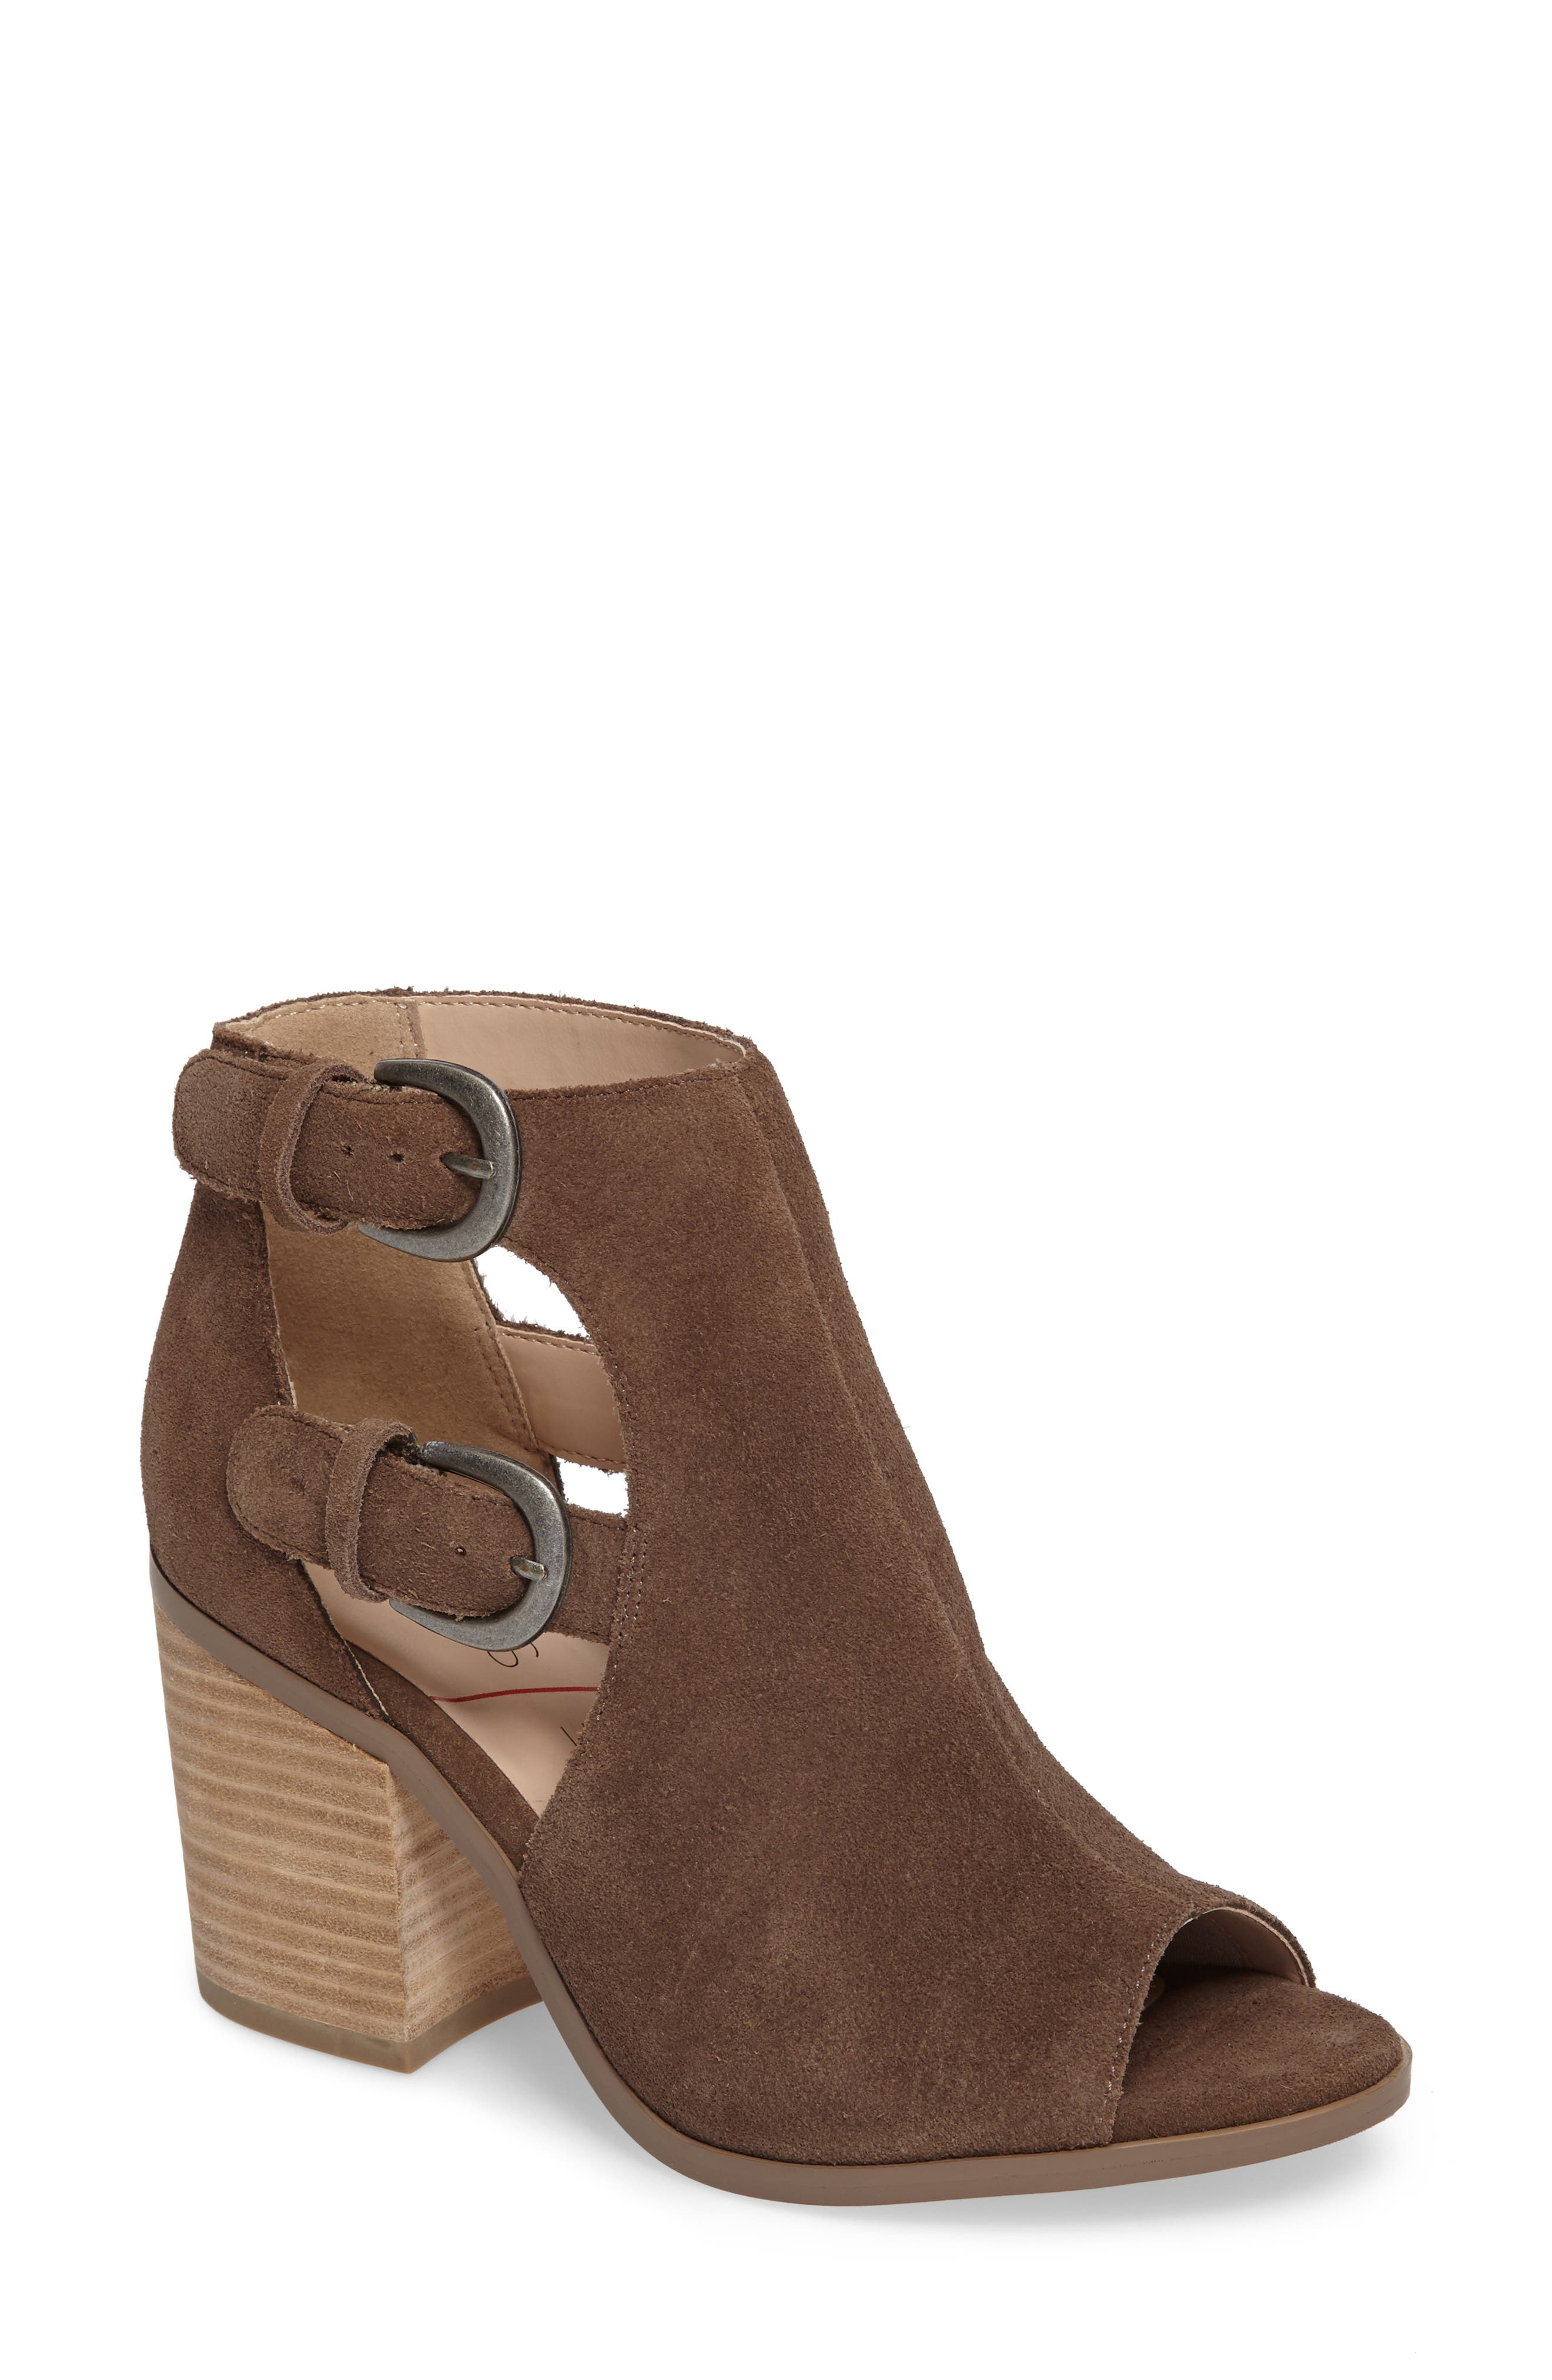 Main Image - Sole Society Hyperion Peep Toe Bootie (Women)